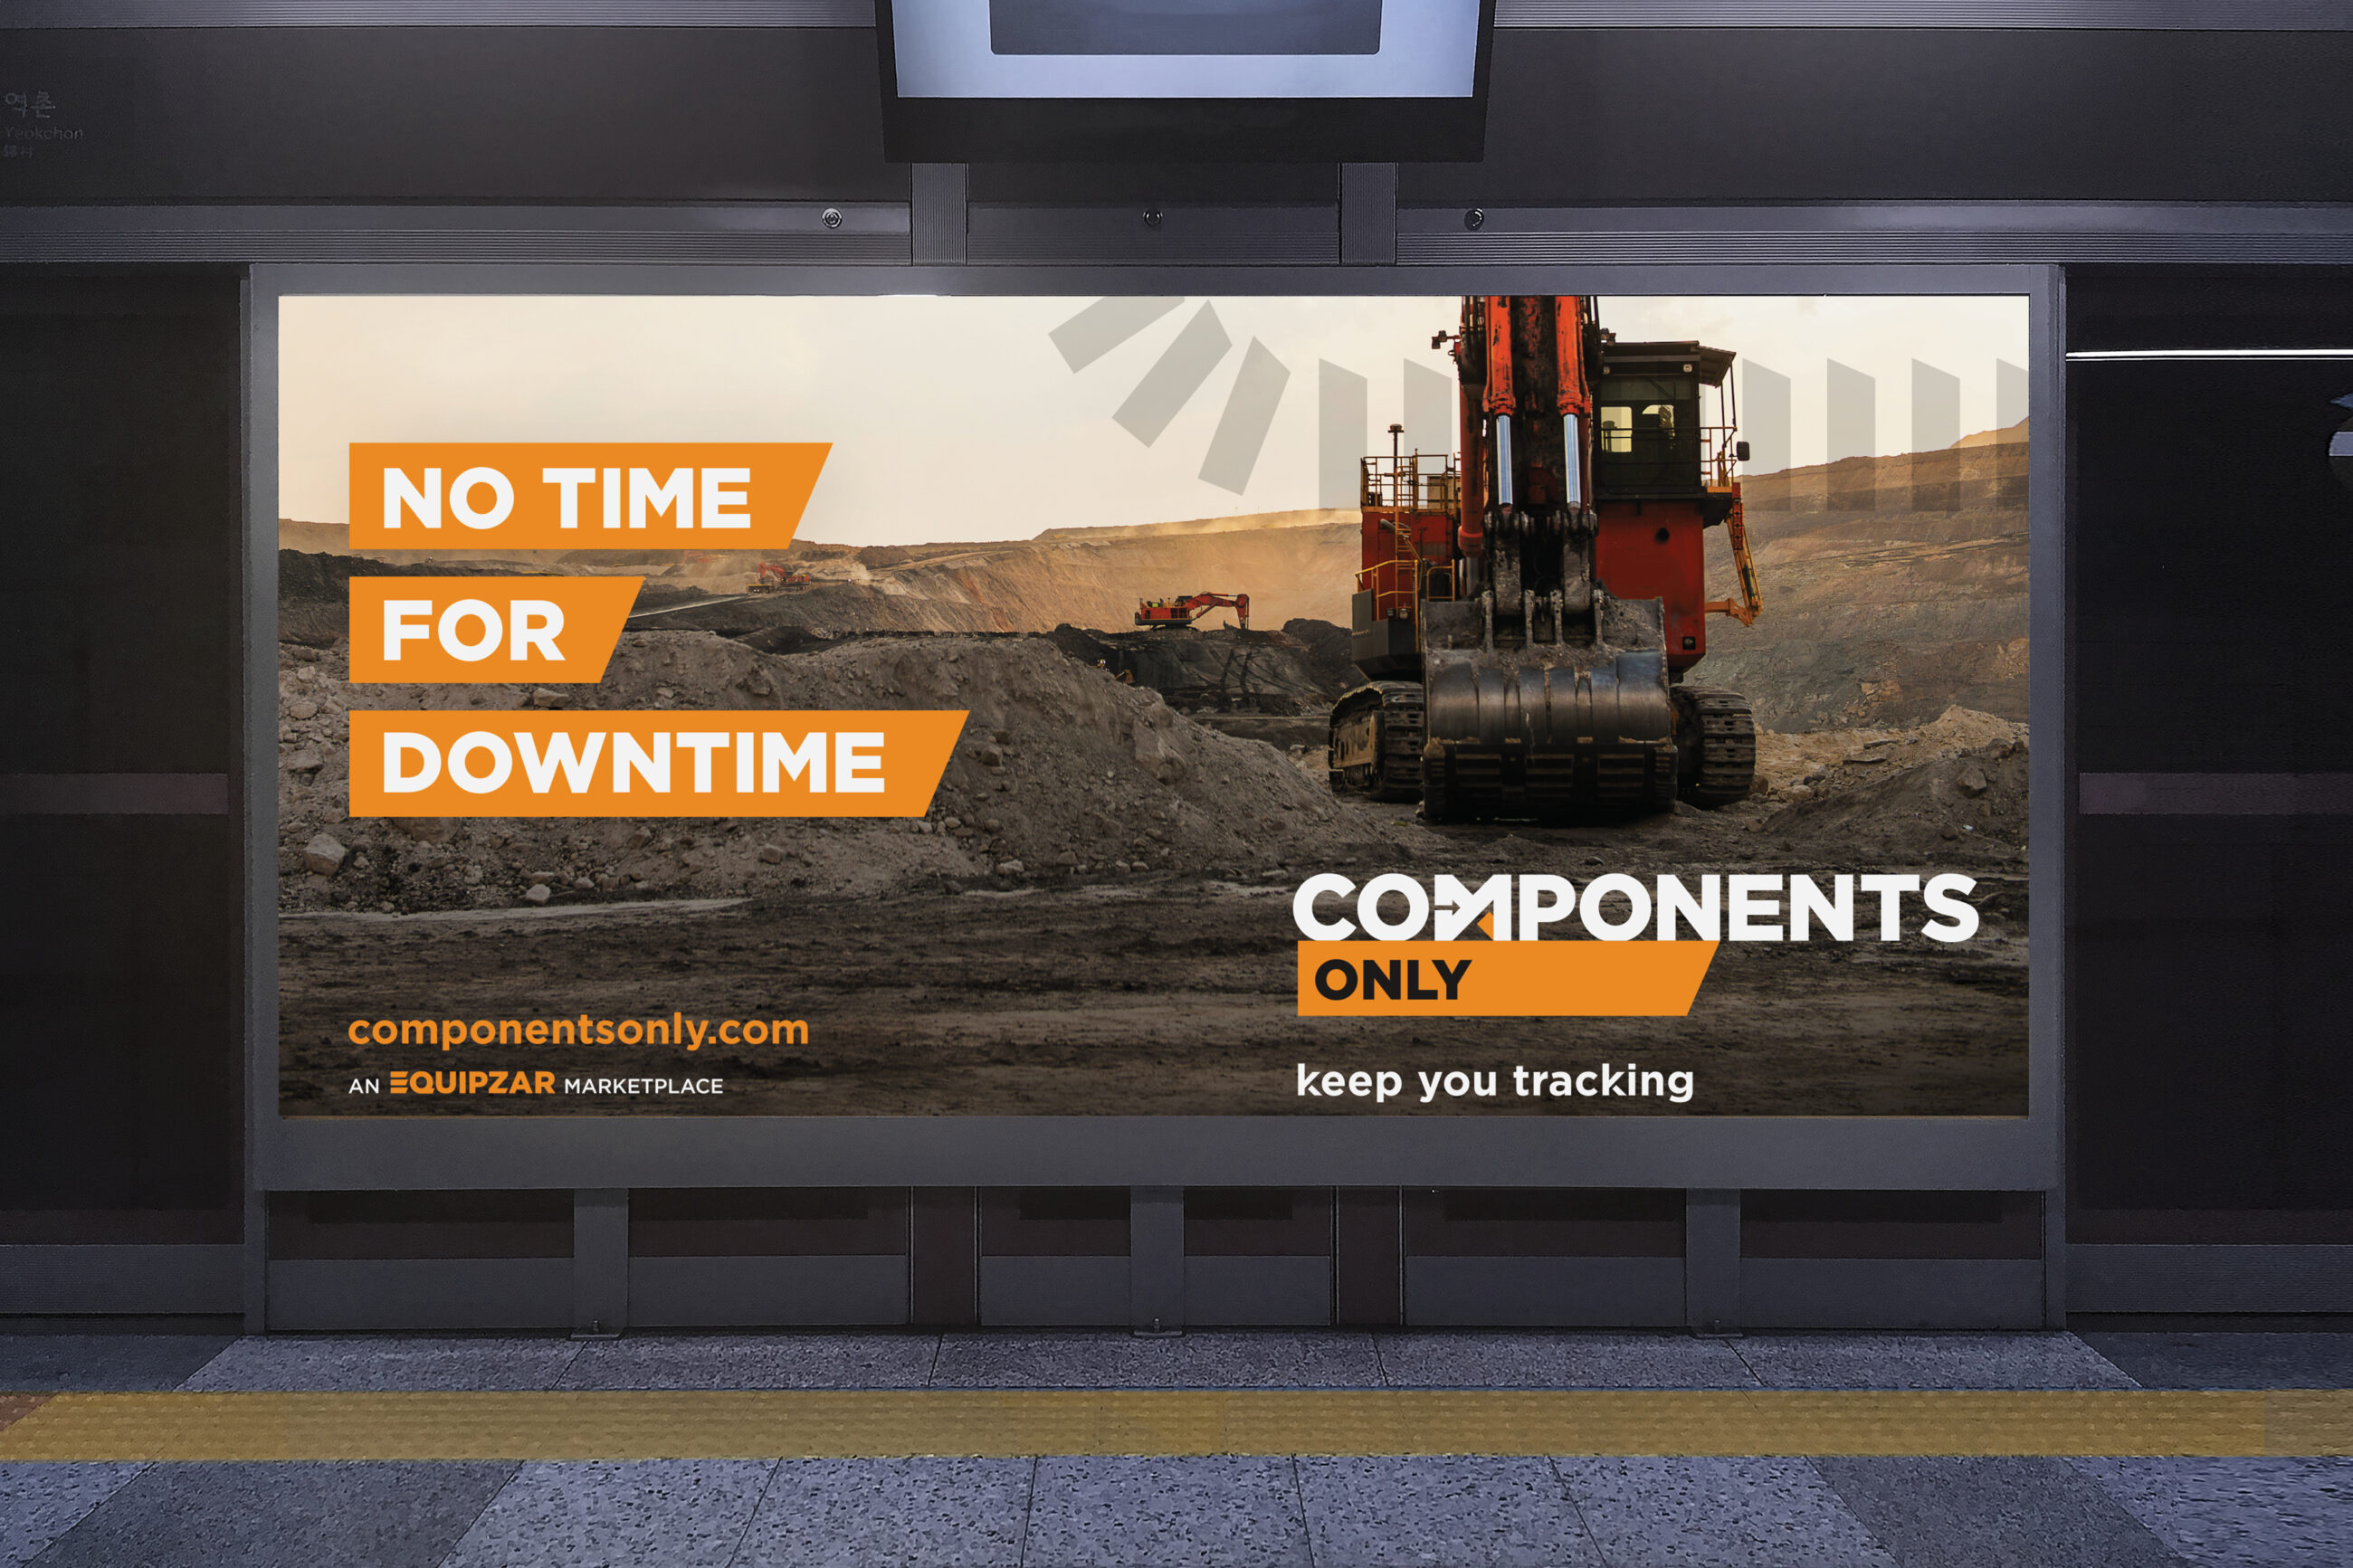 Components Only billboard for mining with campaign language and brand imagery